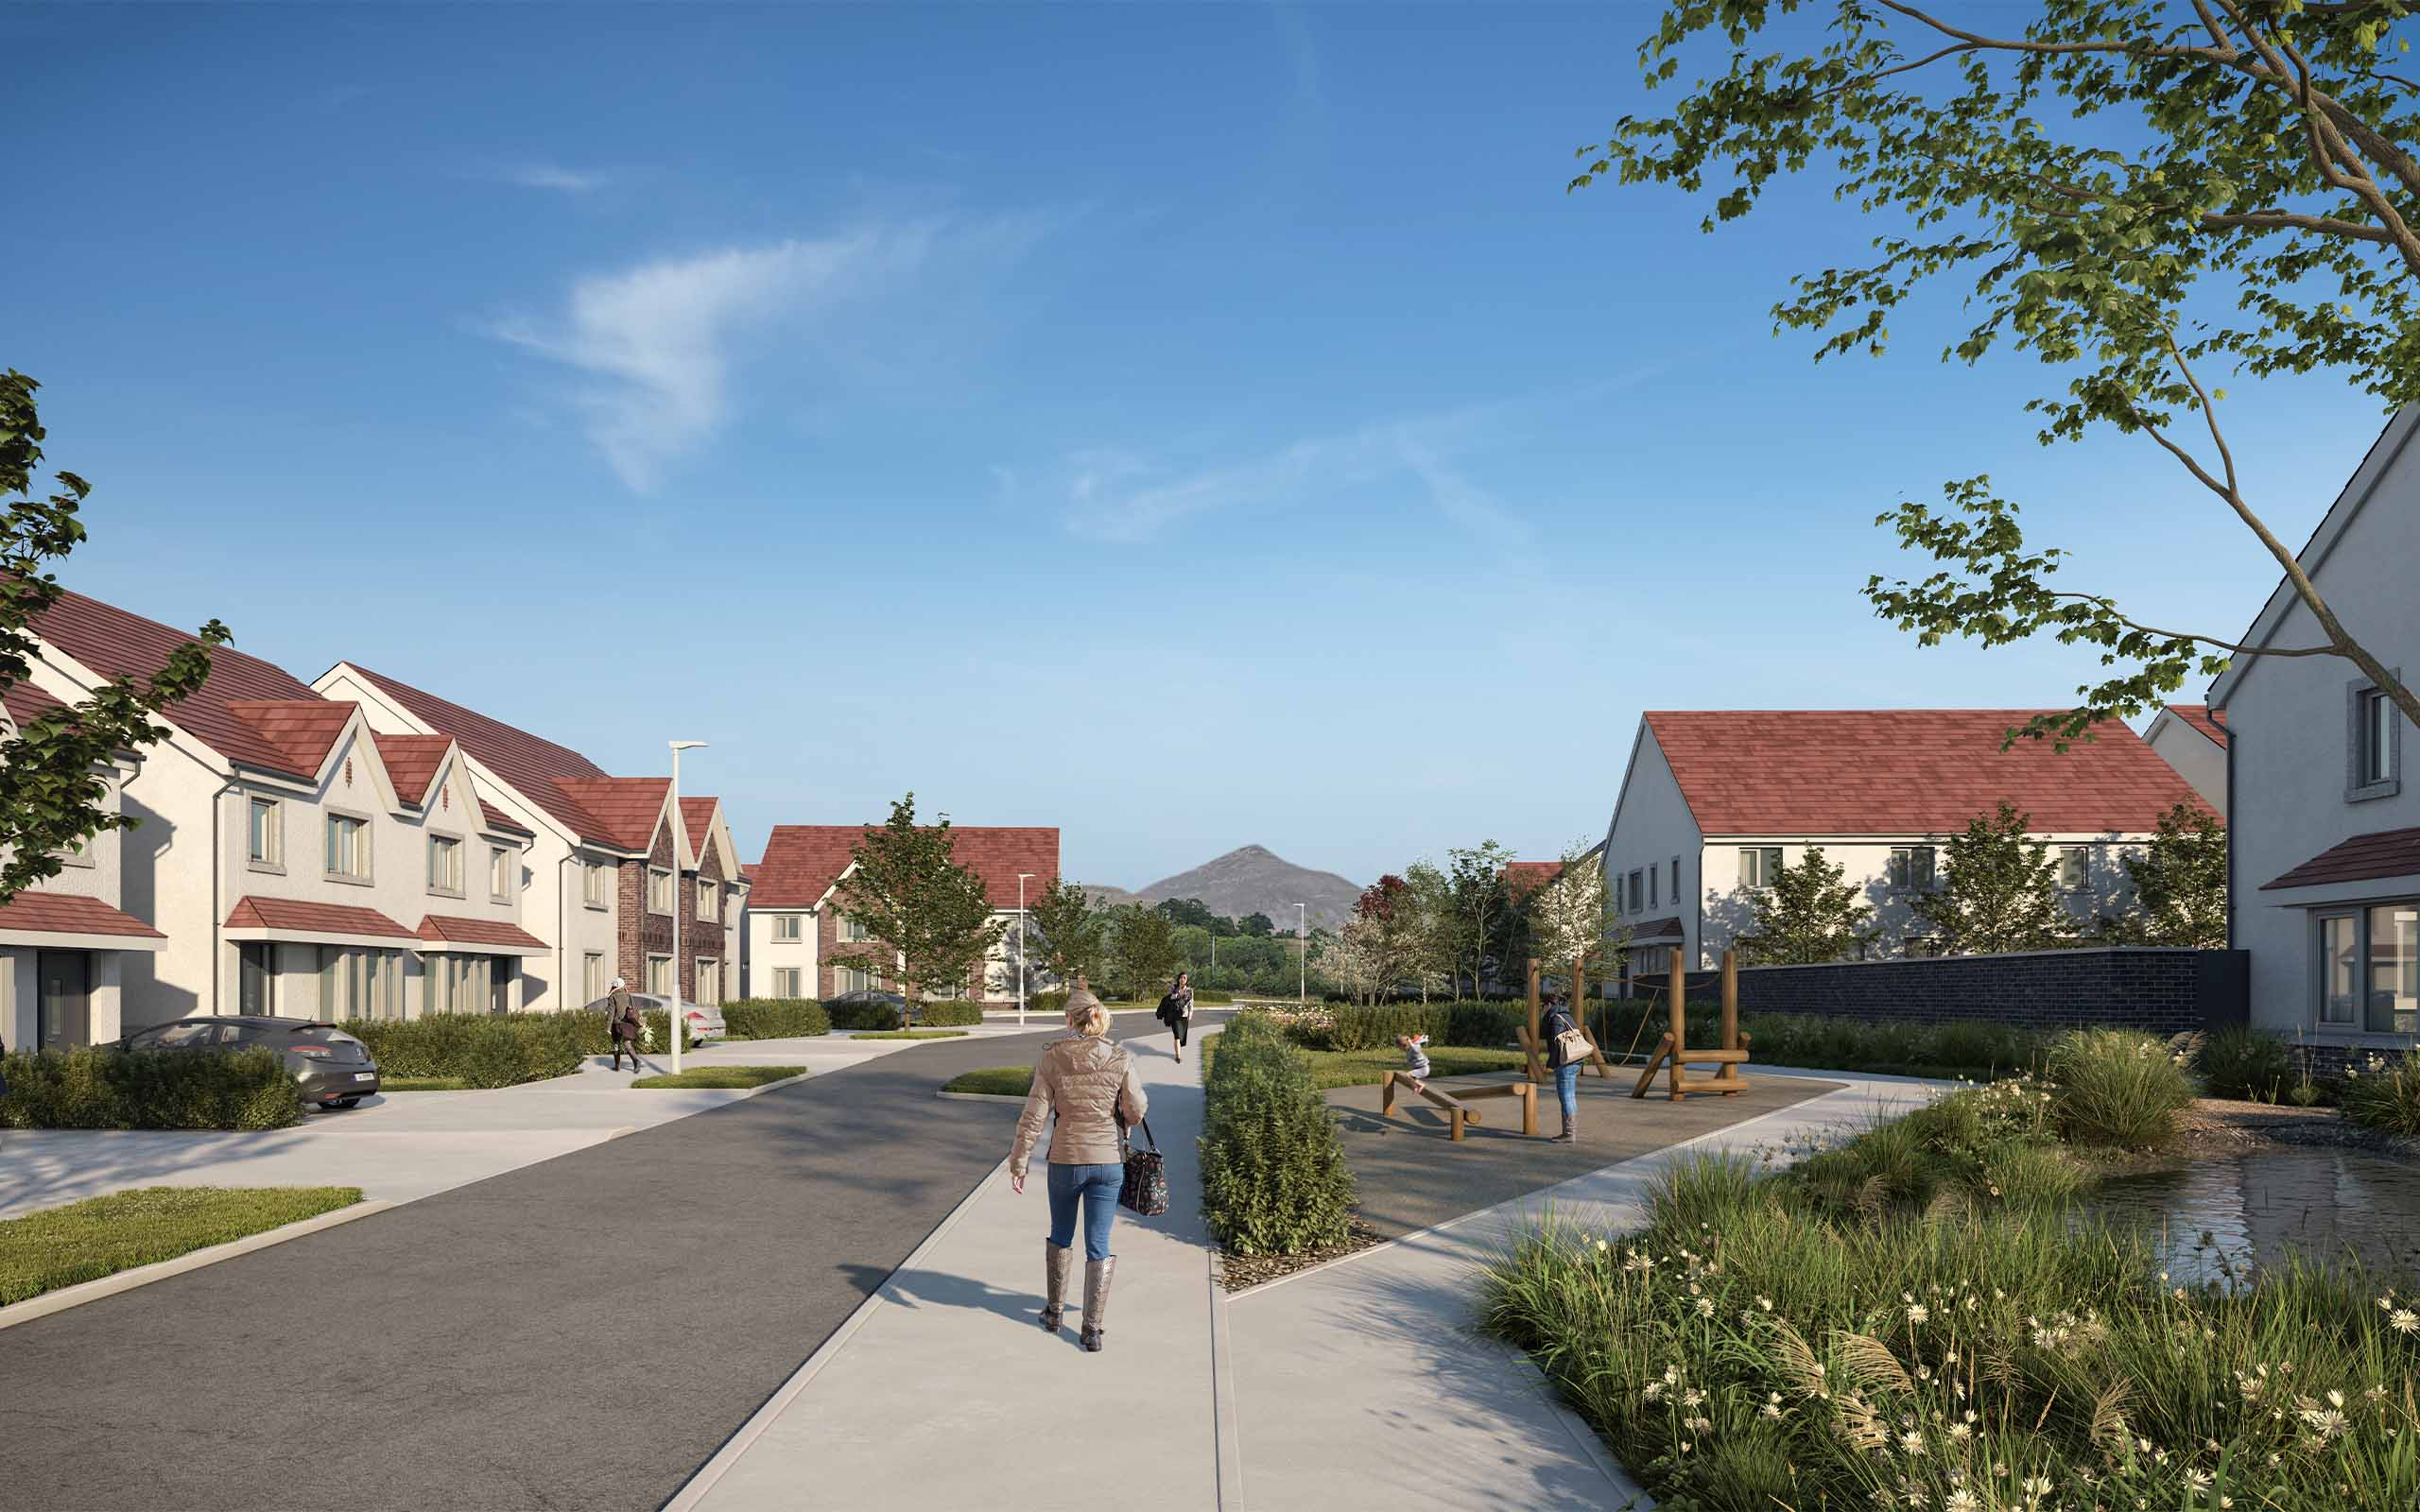 Architectural CGI of 165-unit Housing Development in Enniskerry, Co. Wicklow.